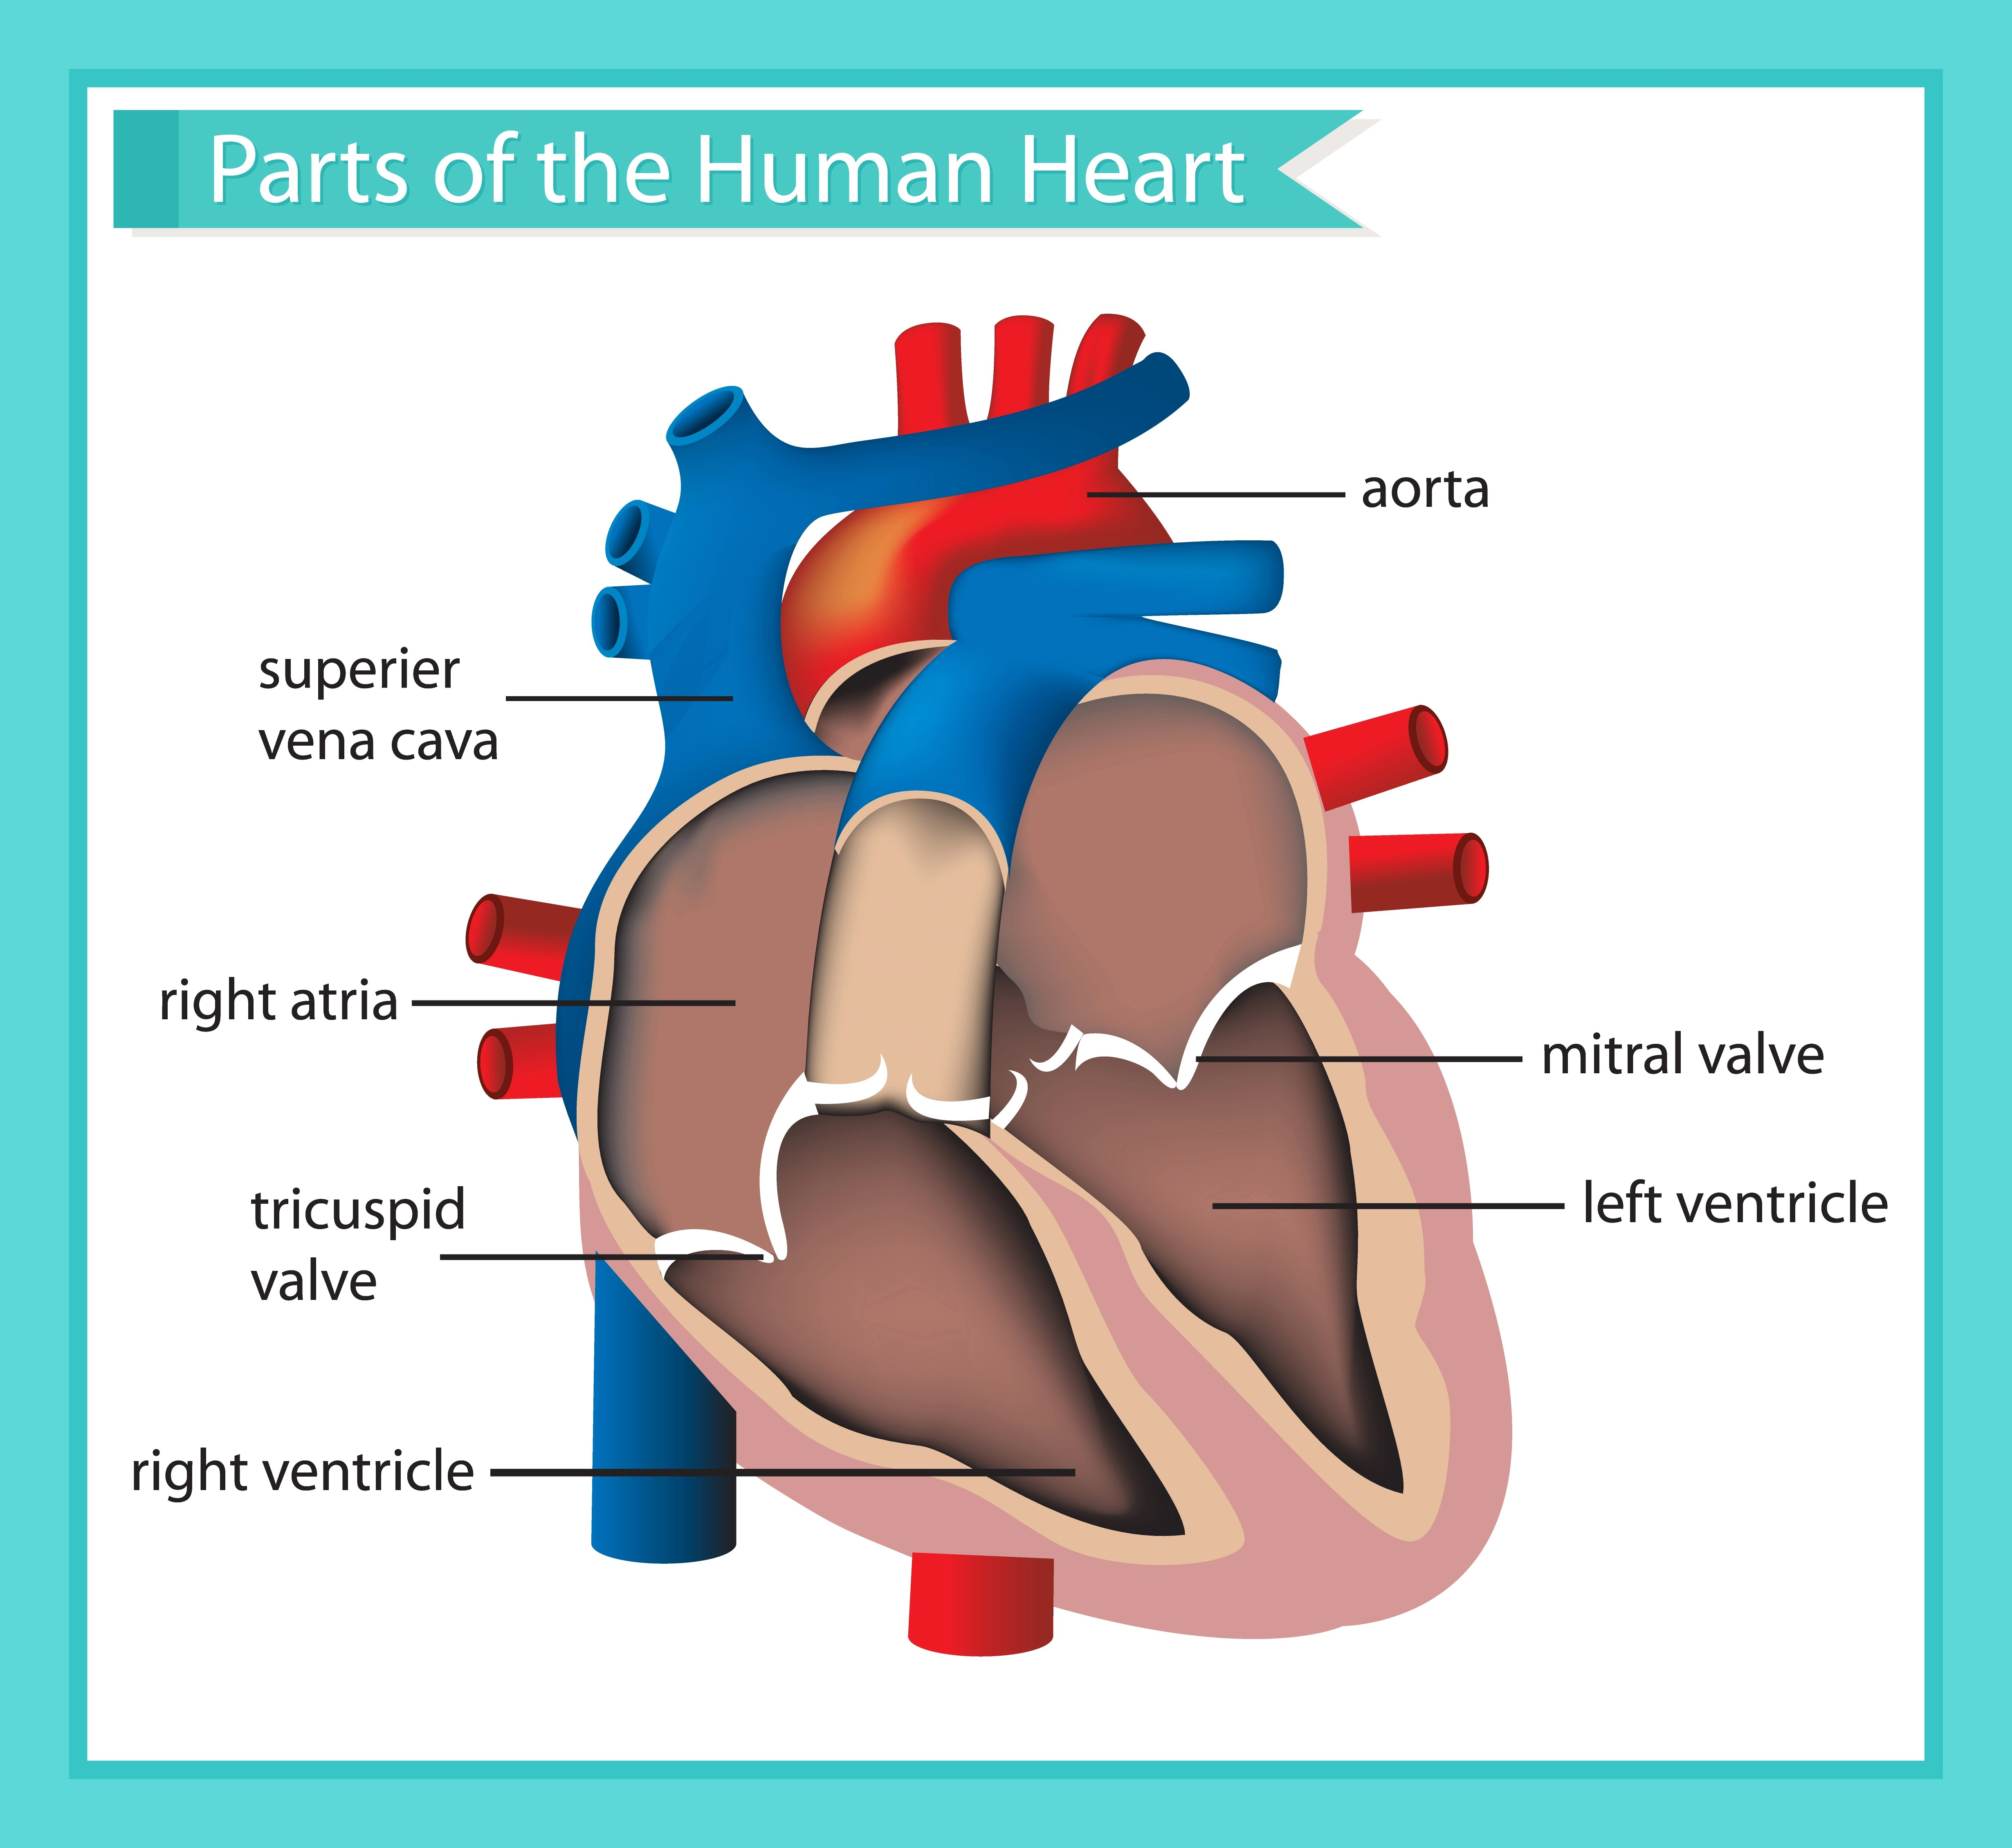 Scientific Medical Illustration Of Parts Of The Human